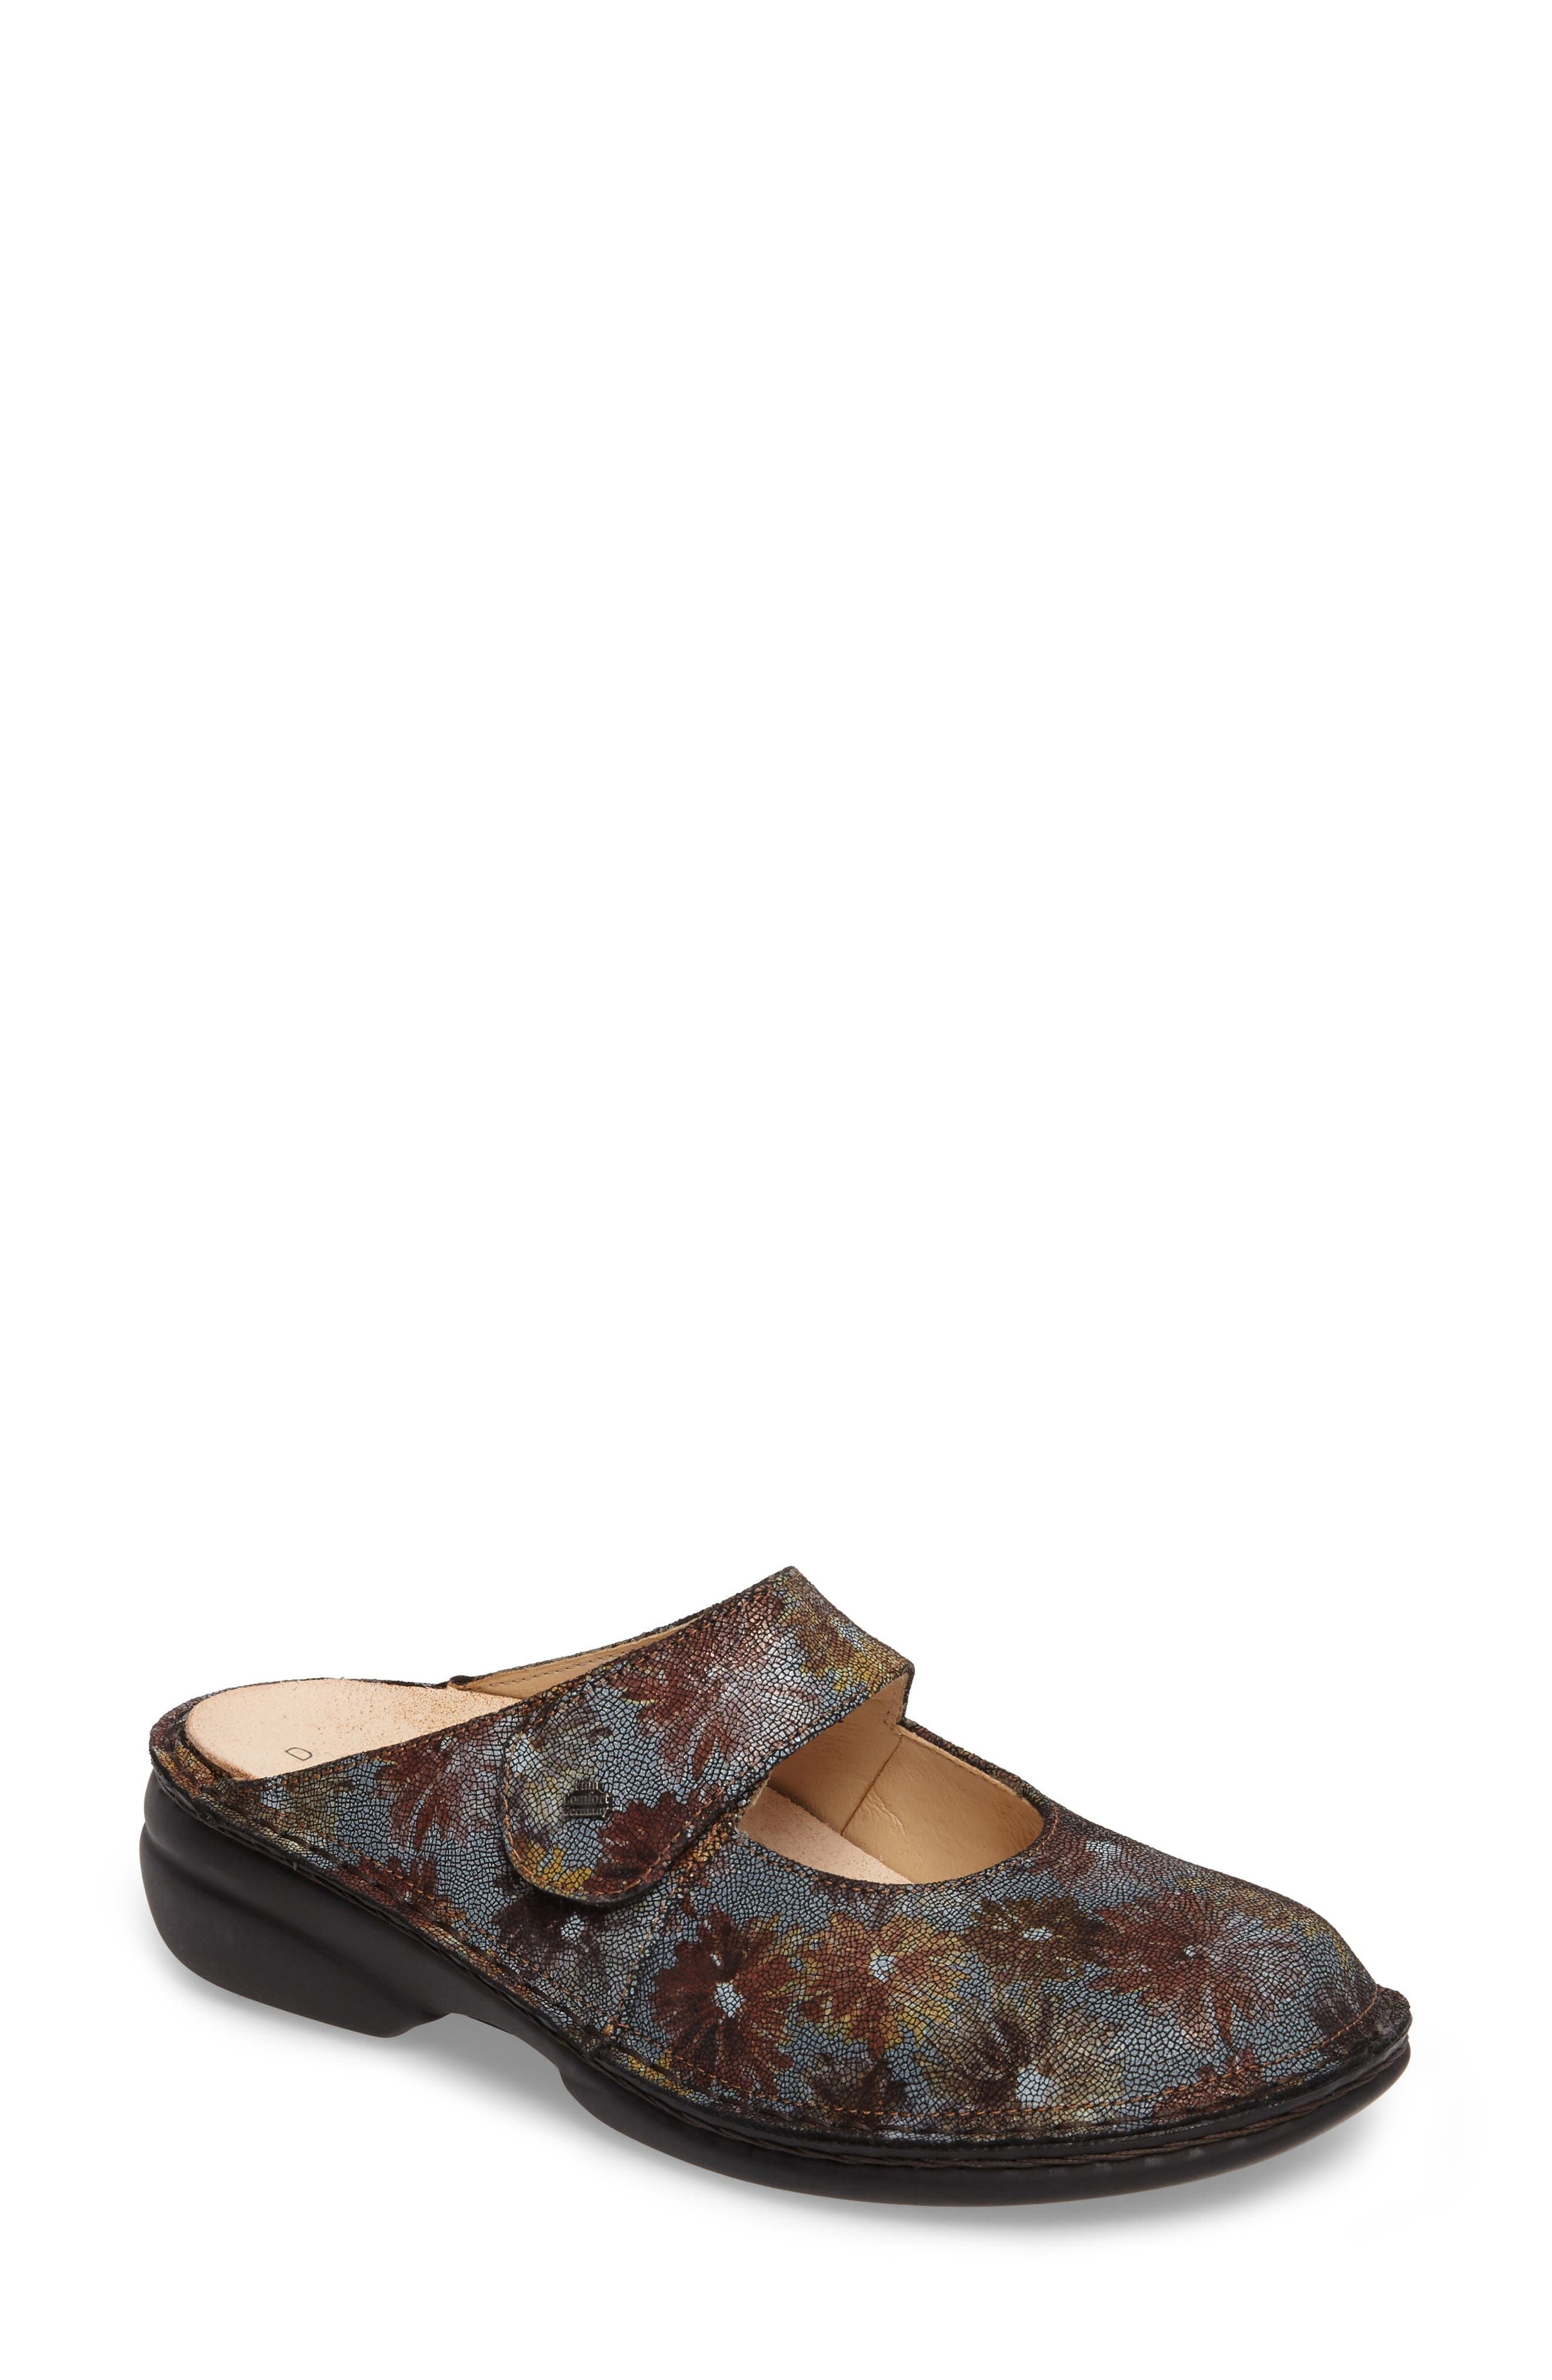 'Stanford' Clog,                         Main,                         color, Brown Leather